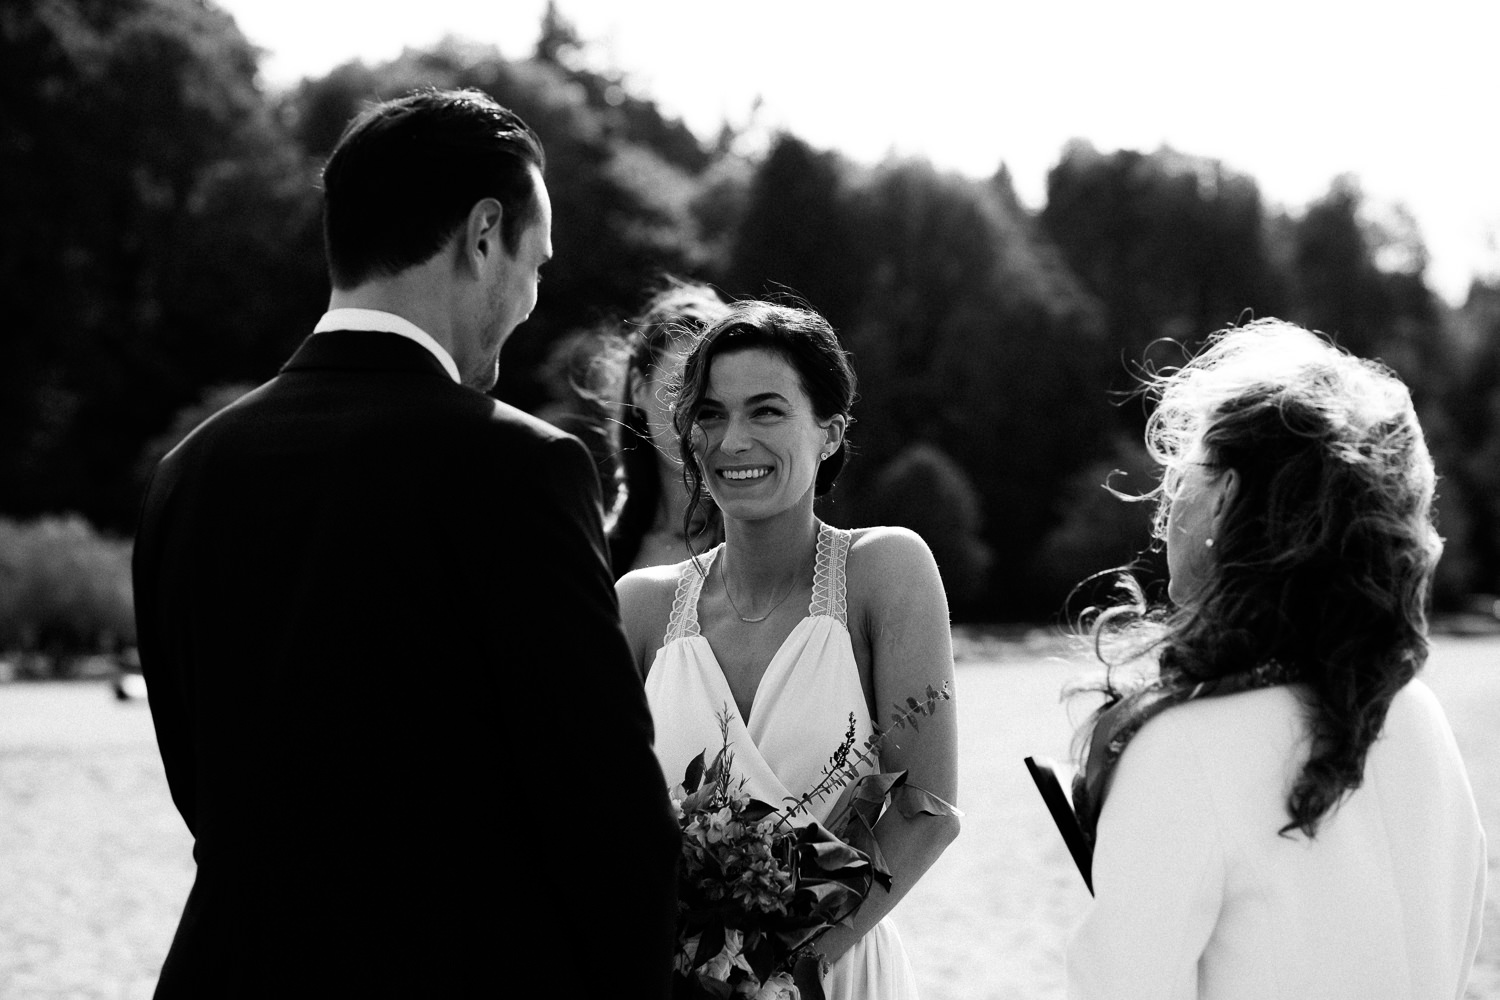 bride smiling at the groom during the ceremony